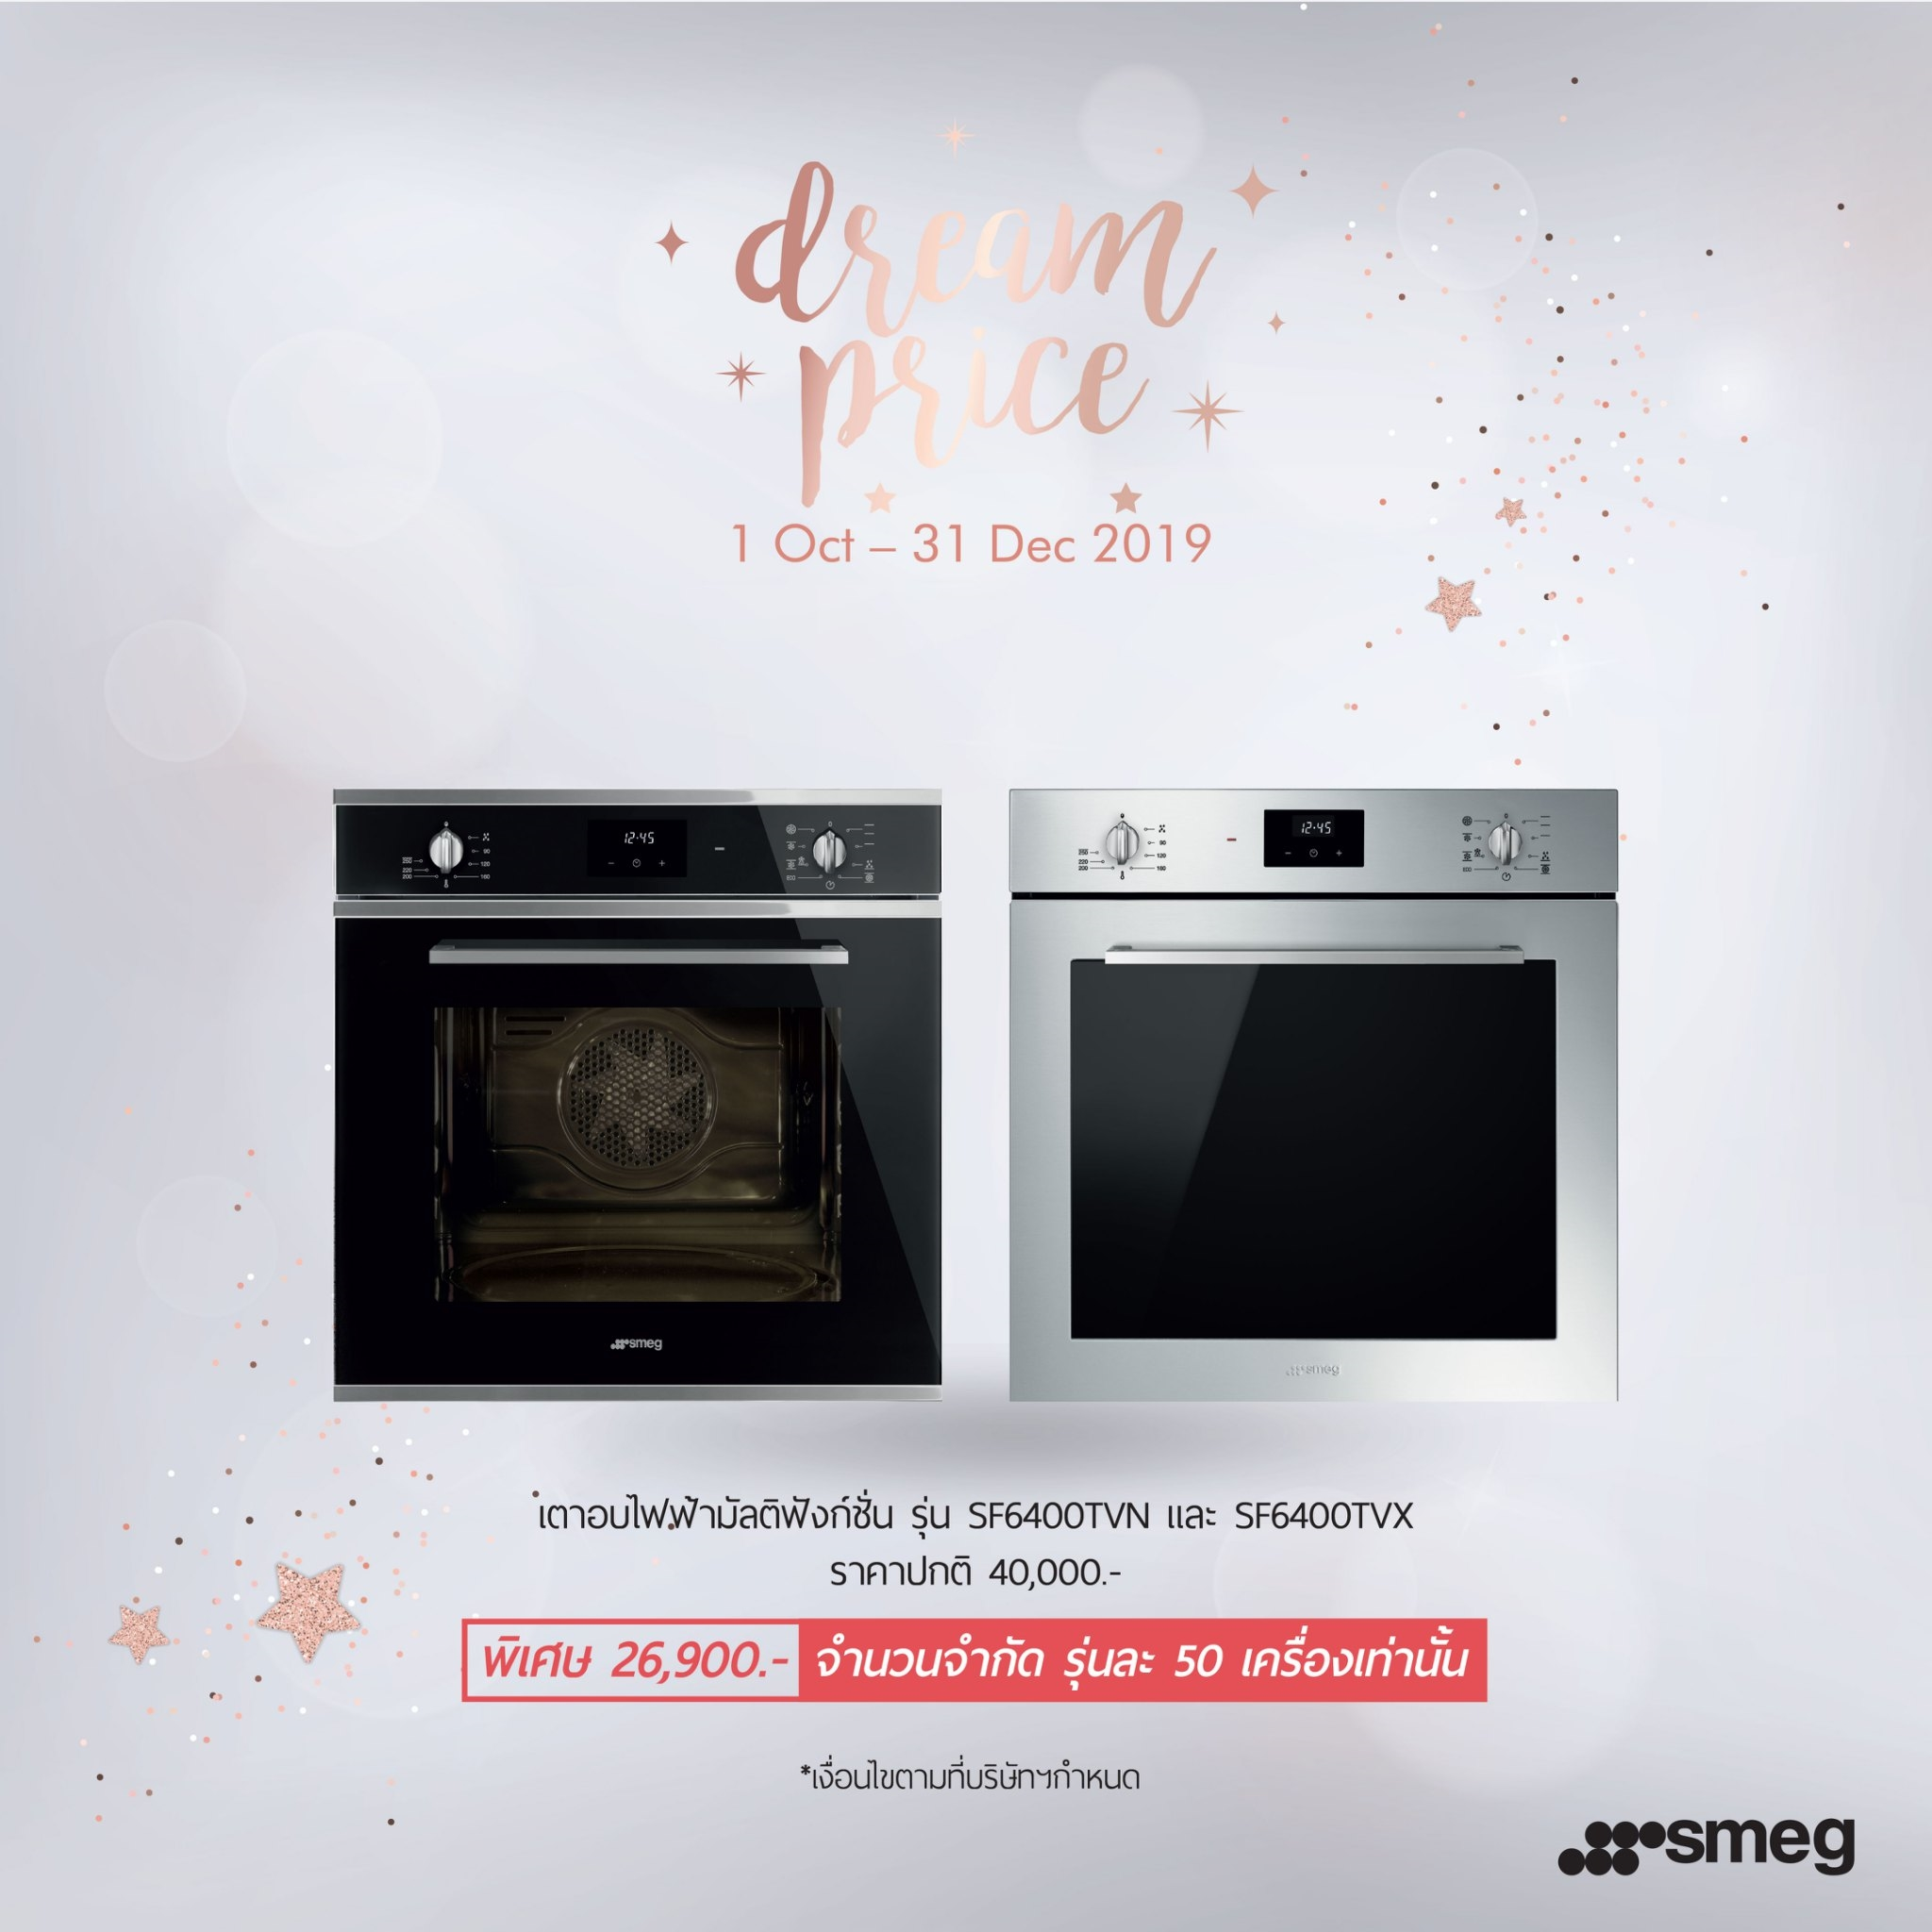 Smeg Dream Price 2019 : SF6400TVX SF6400TVN